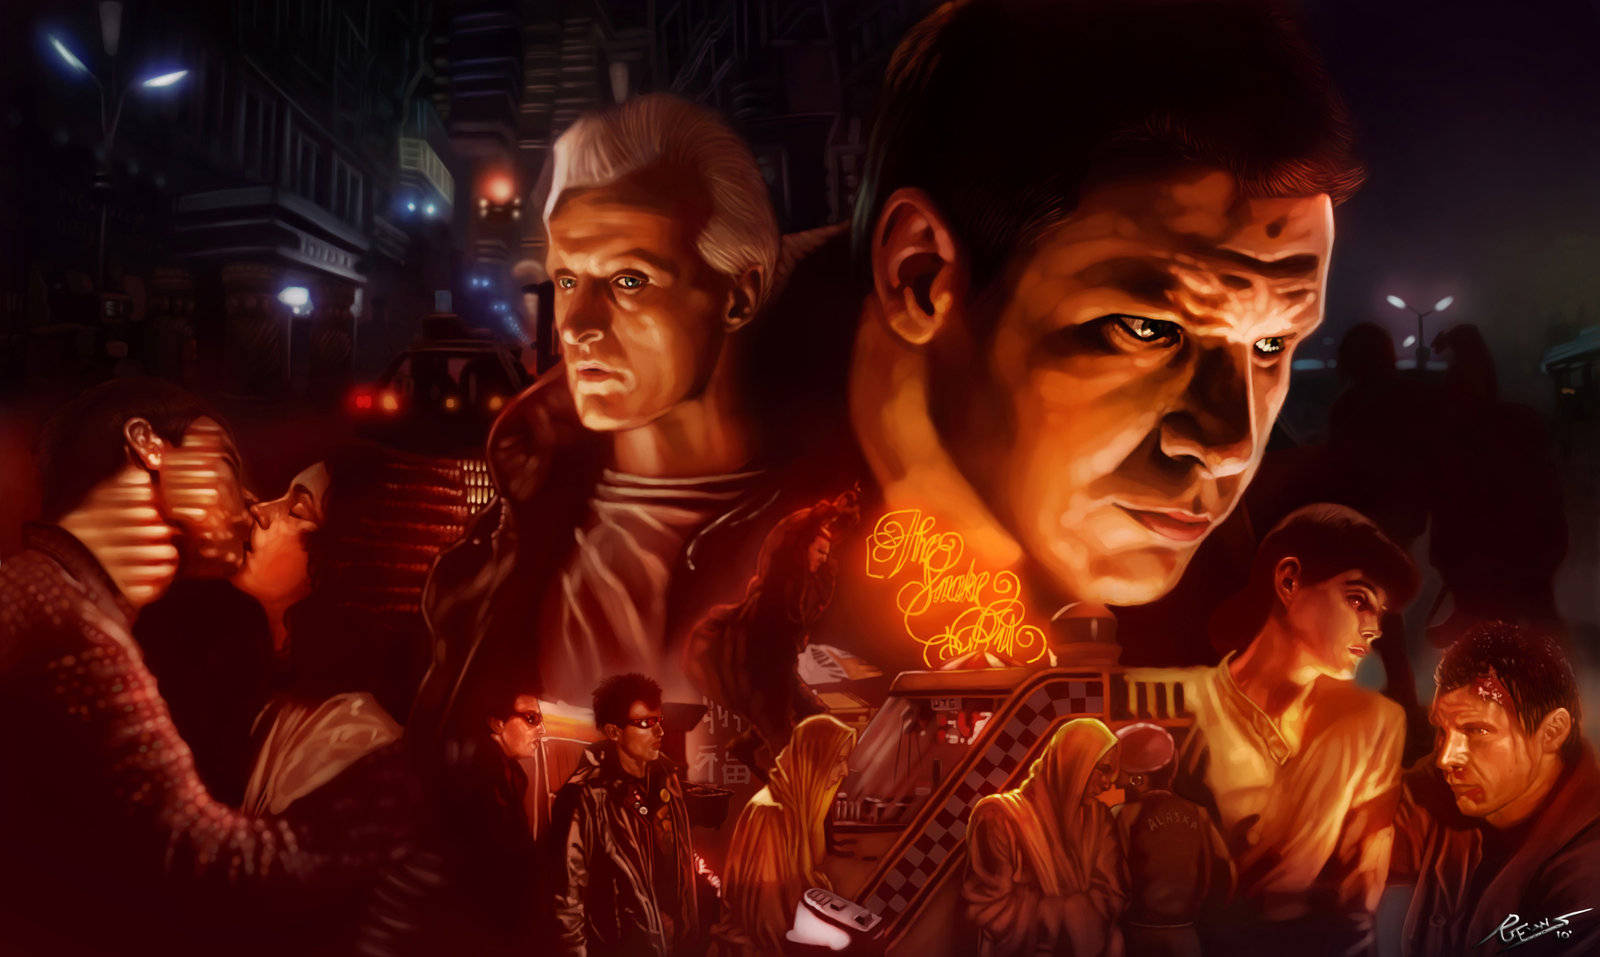 Blade Runner 1600957 Wallpaper 943915 1600x957